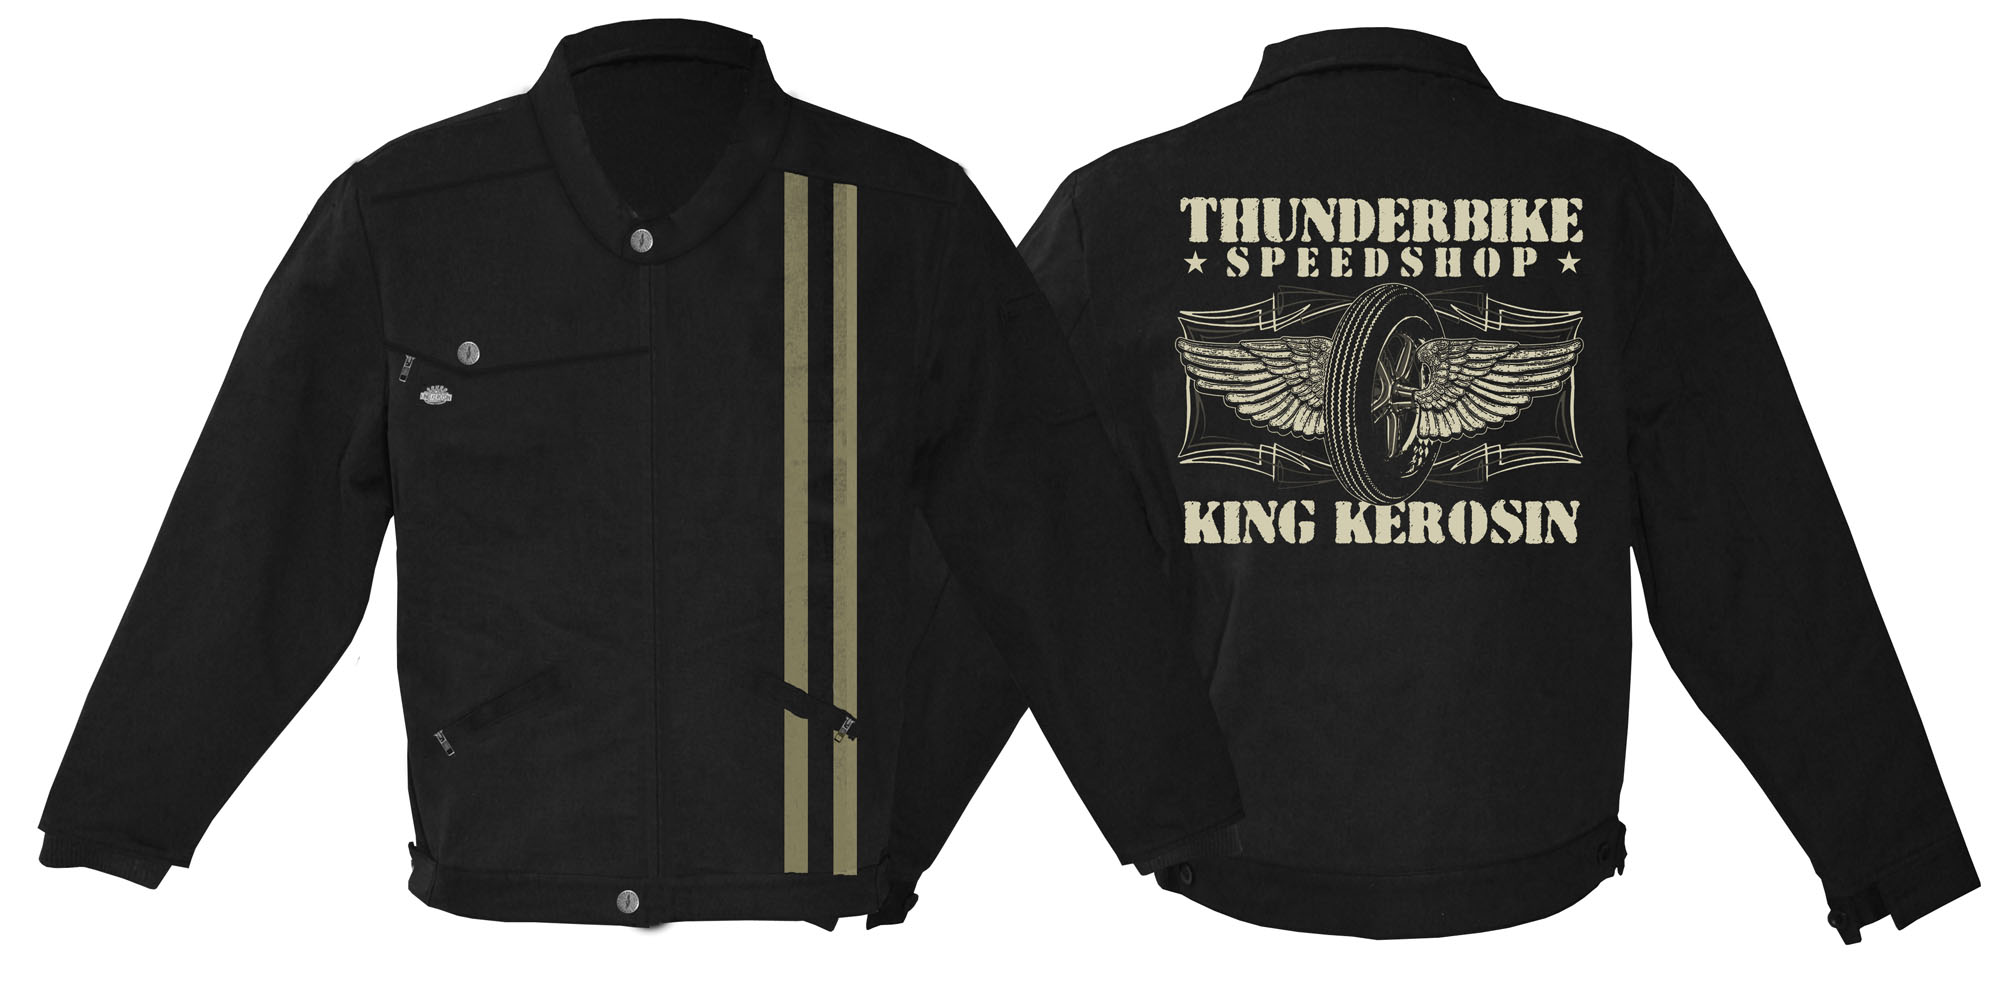 king kerosin racingjacket speedshop at thunderbike shop. Black Bedroom Furniture Sets. Home Design Ideas